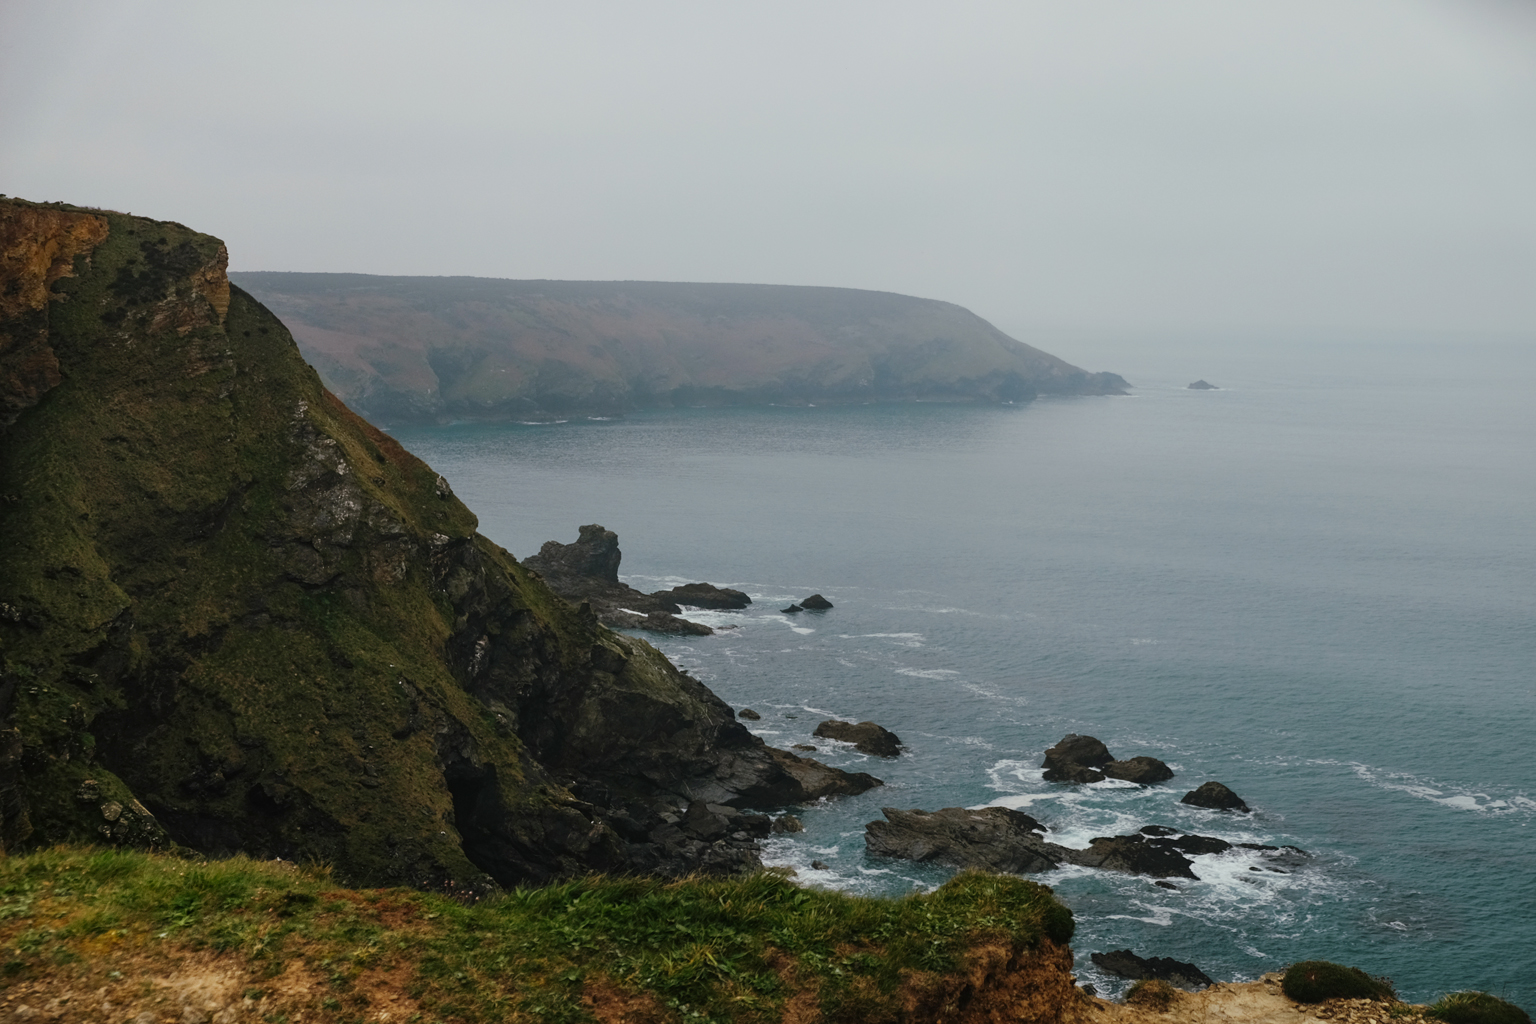 One last look at the view from the North Cliffs before heading home